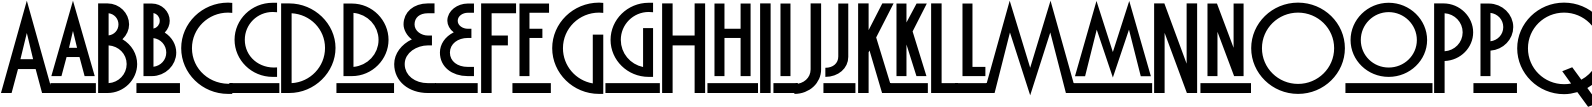 Marquisette BTN Lined Bold Font